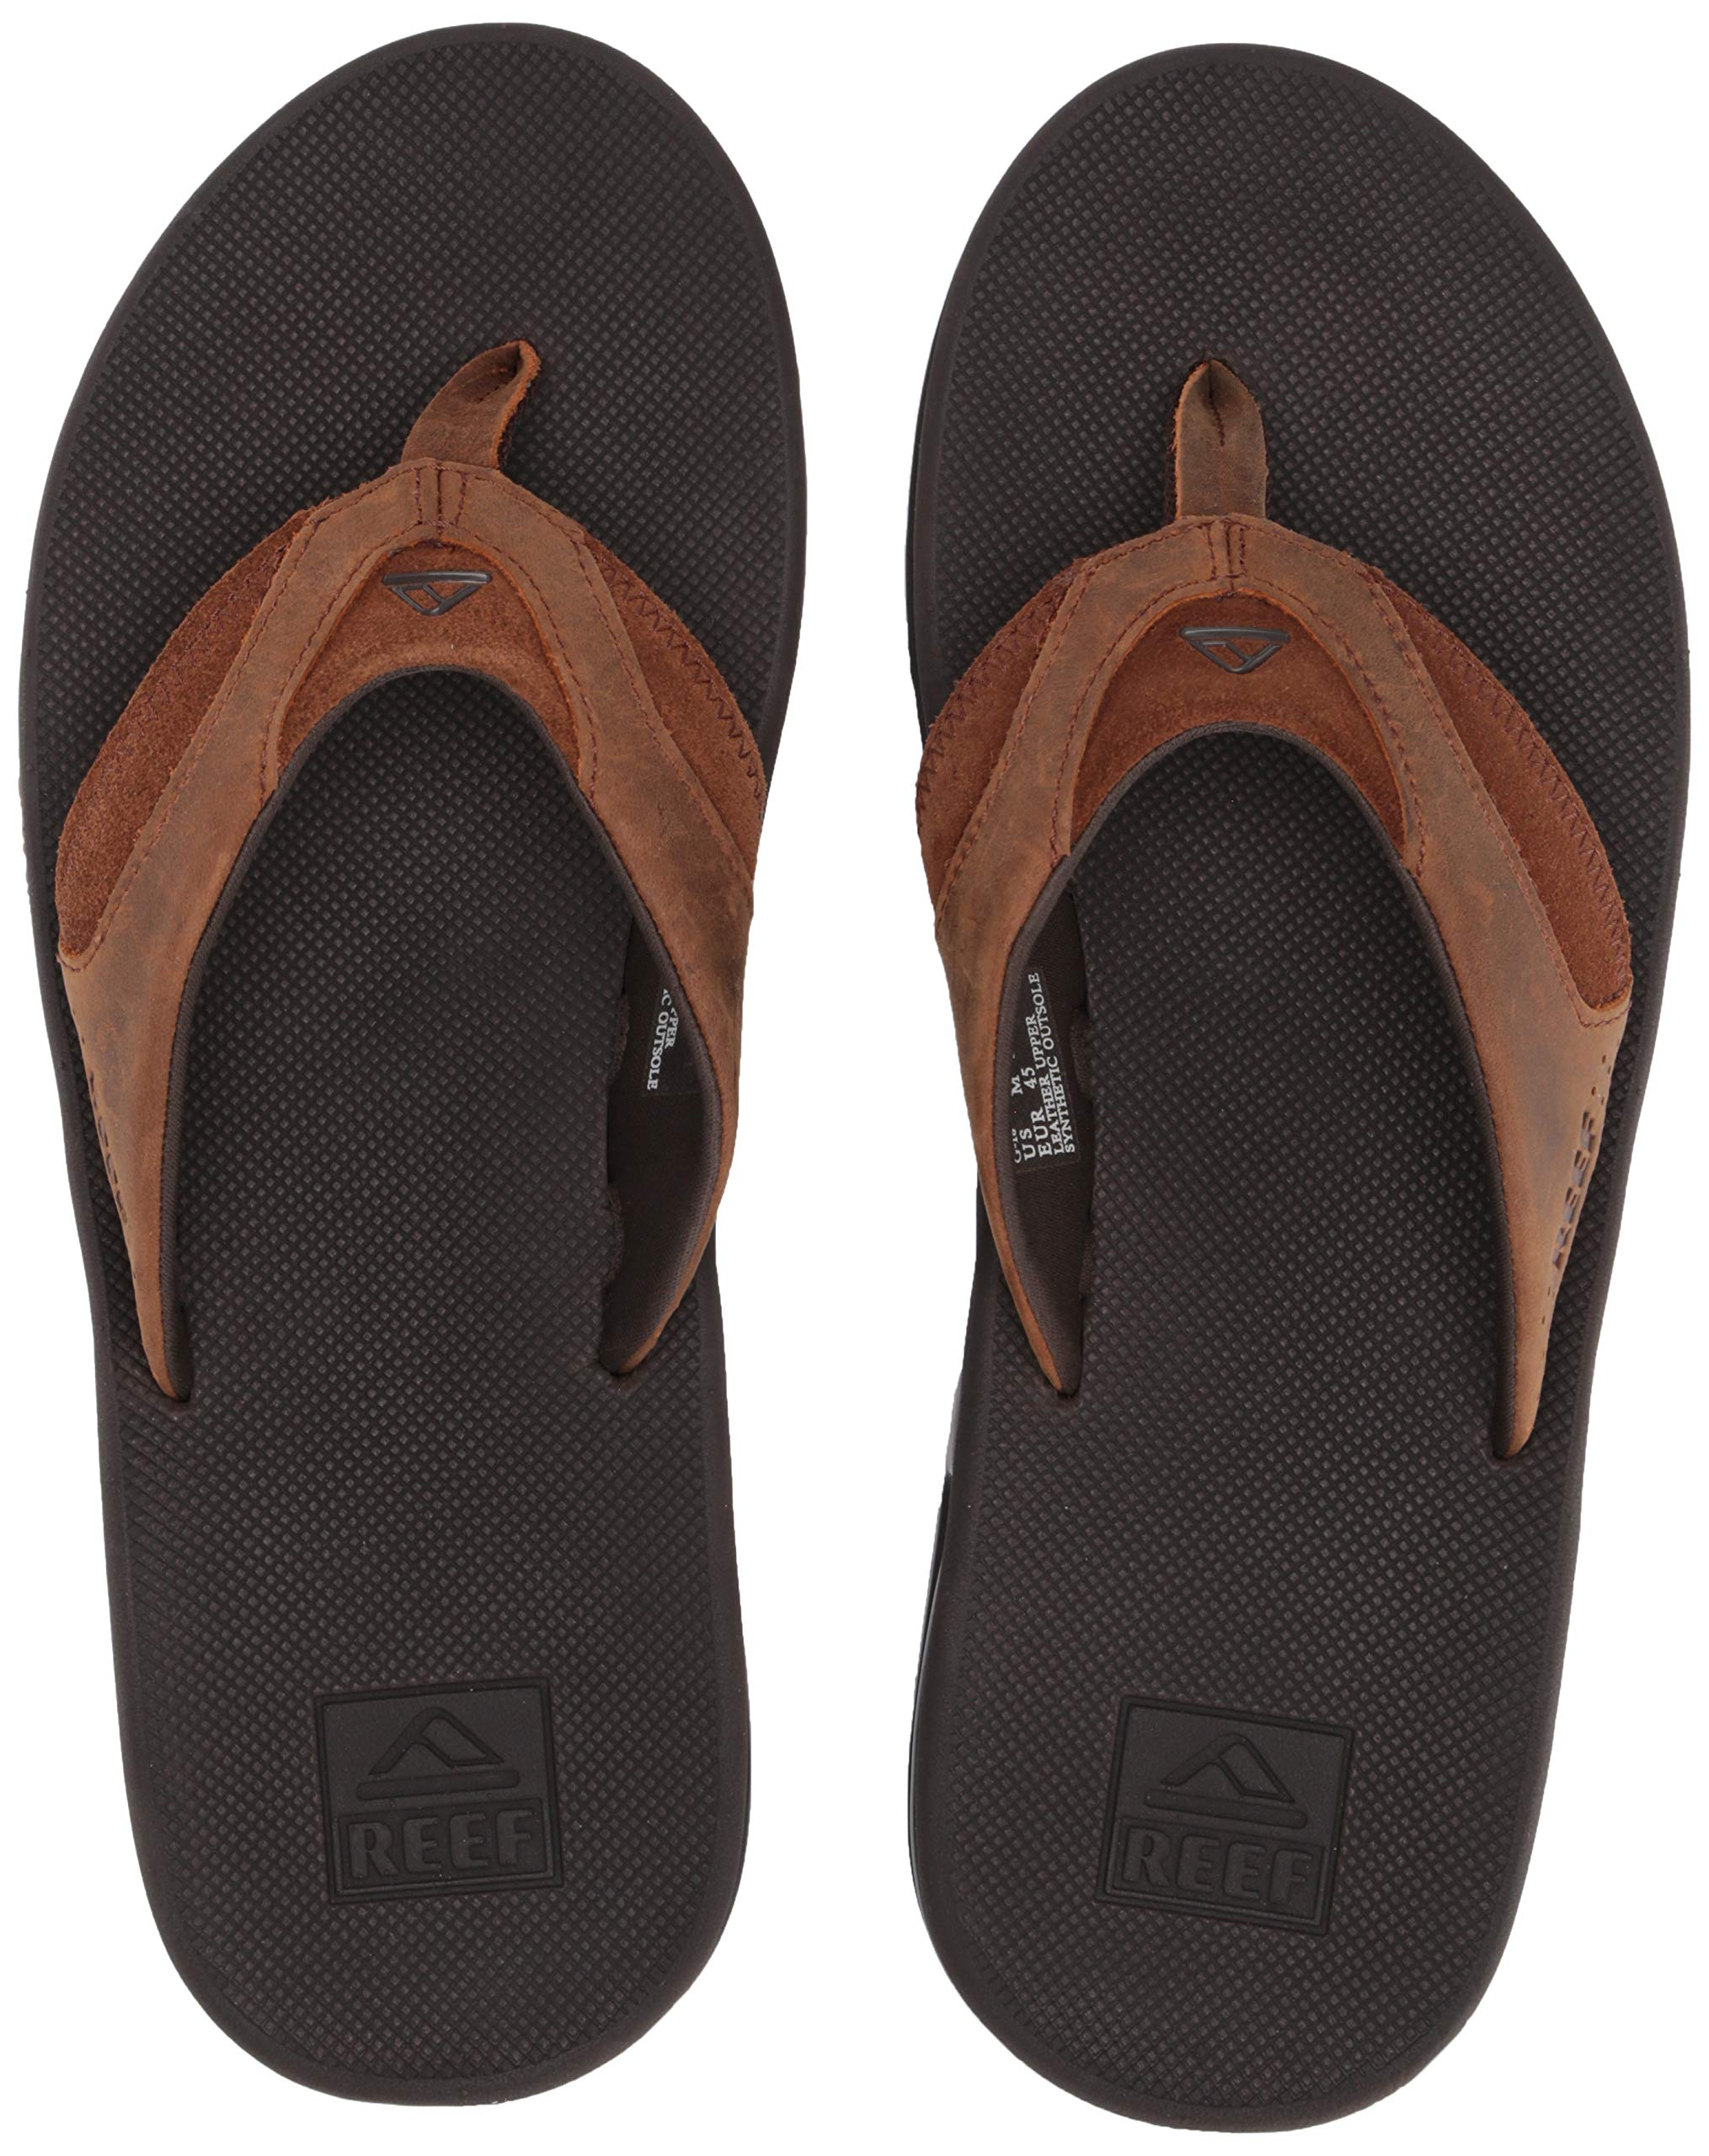 Reef Men's Leather Fanning Sandal Bronze 6 Medium US